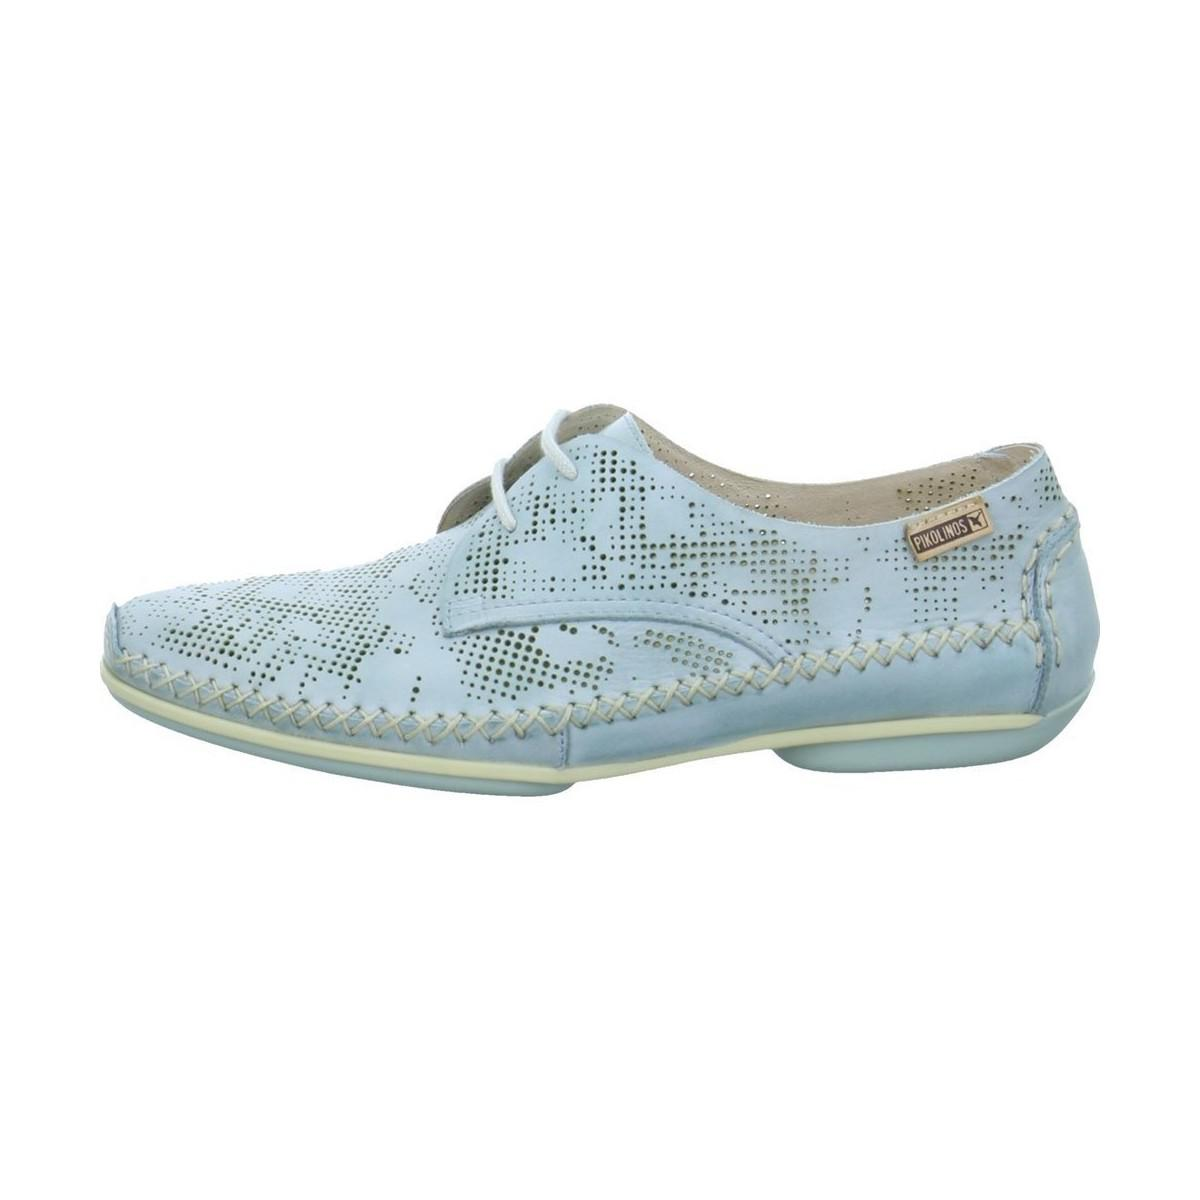 b7fb01c9f37 Pikolinos Roma Women s Loafers   Casual Shoes In Blue in Blue - Save ...